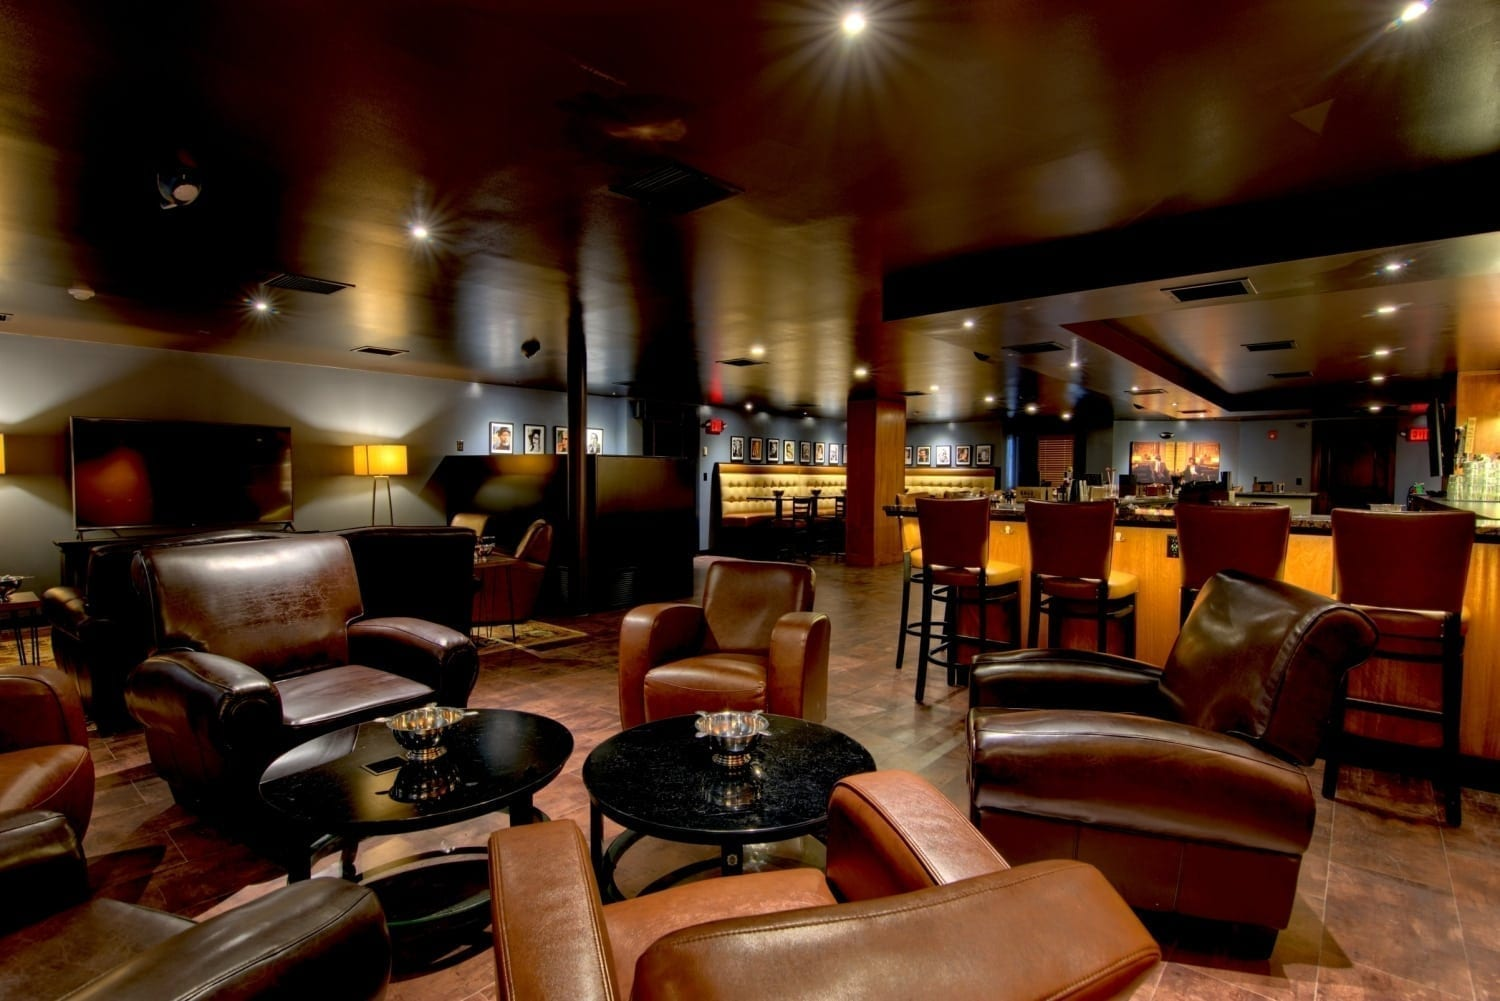 Slow Burn Lounge's amazing cigar bar